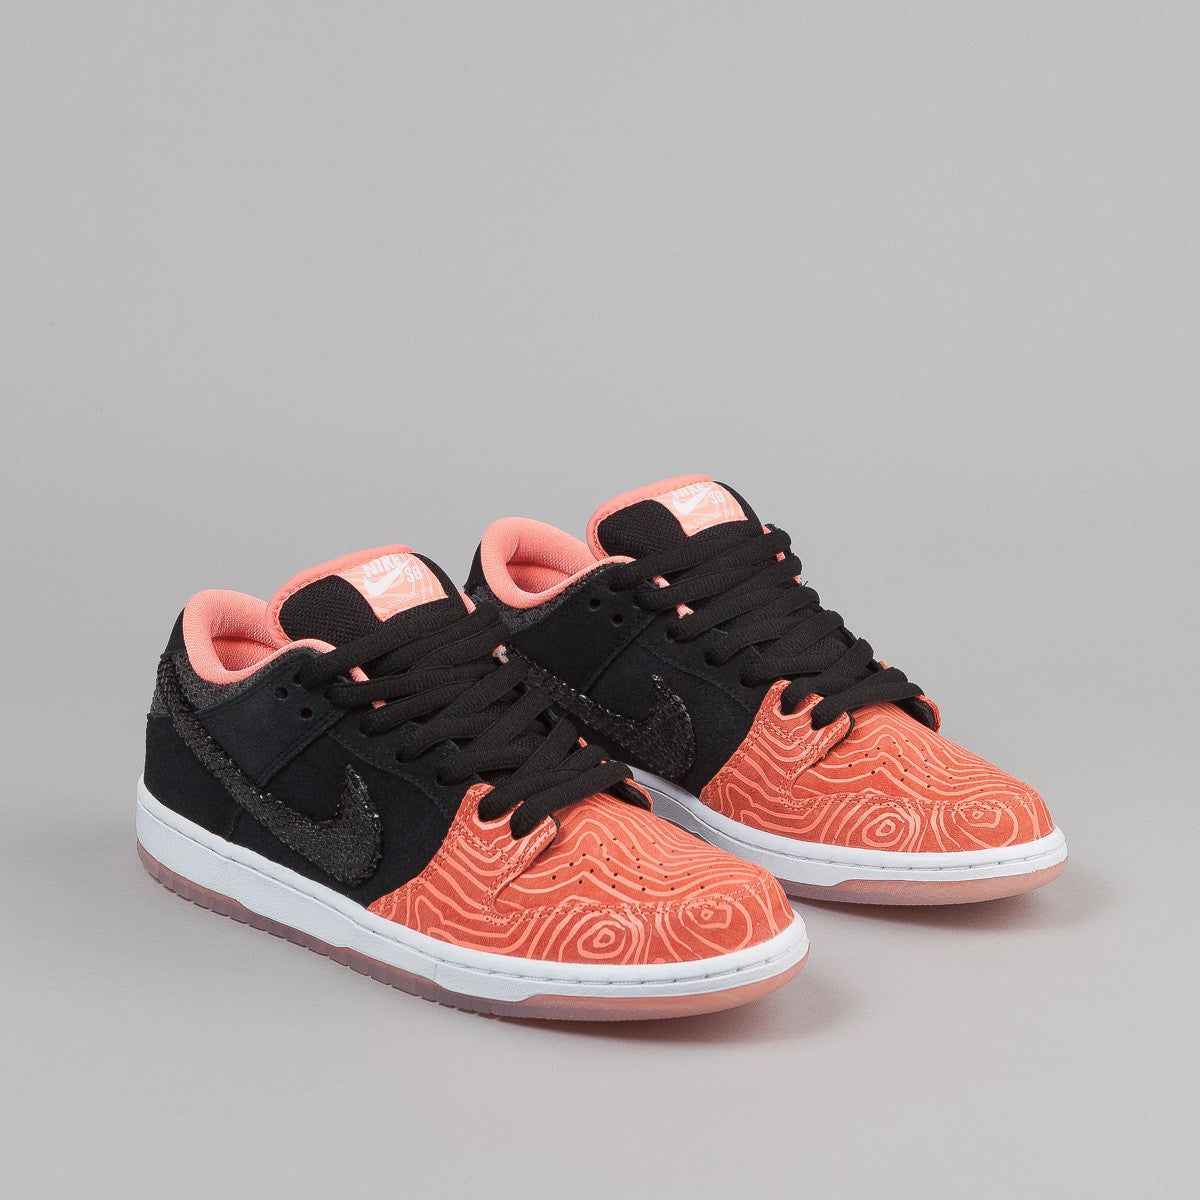 Nike SB Dunk Low Shoes - Atomic Pink / Black / White